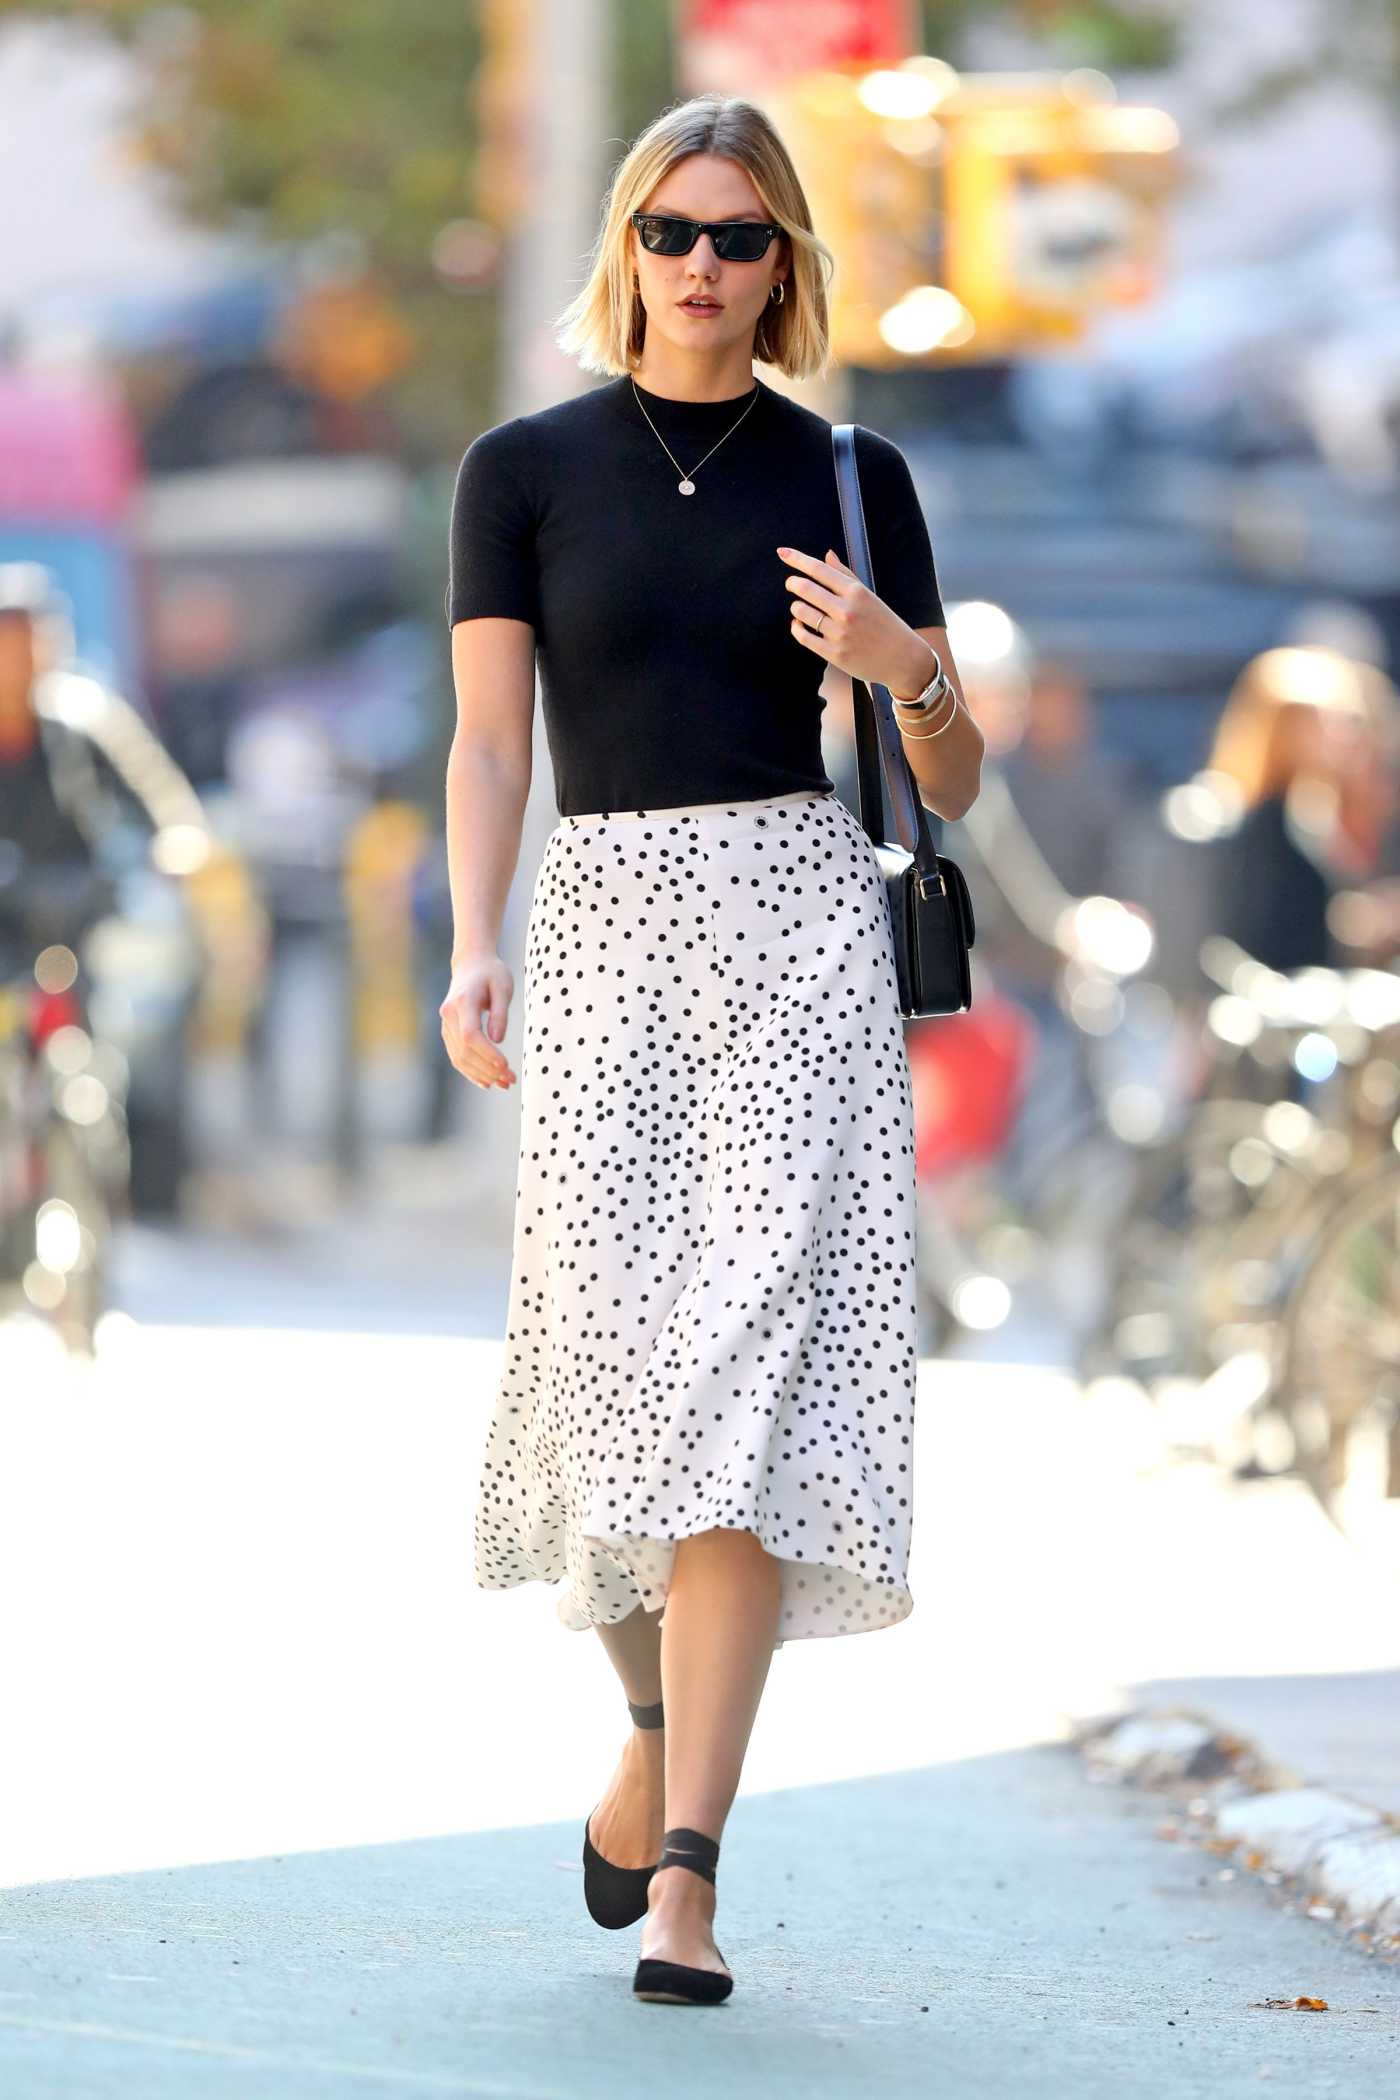 Karlie Kloss in a White Polka Dot Skirt Was Seen Out in NY 10/21/2019